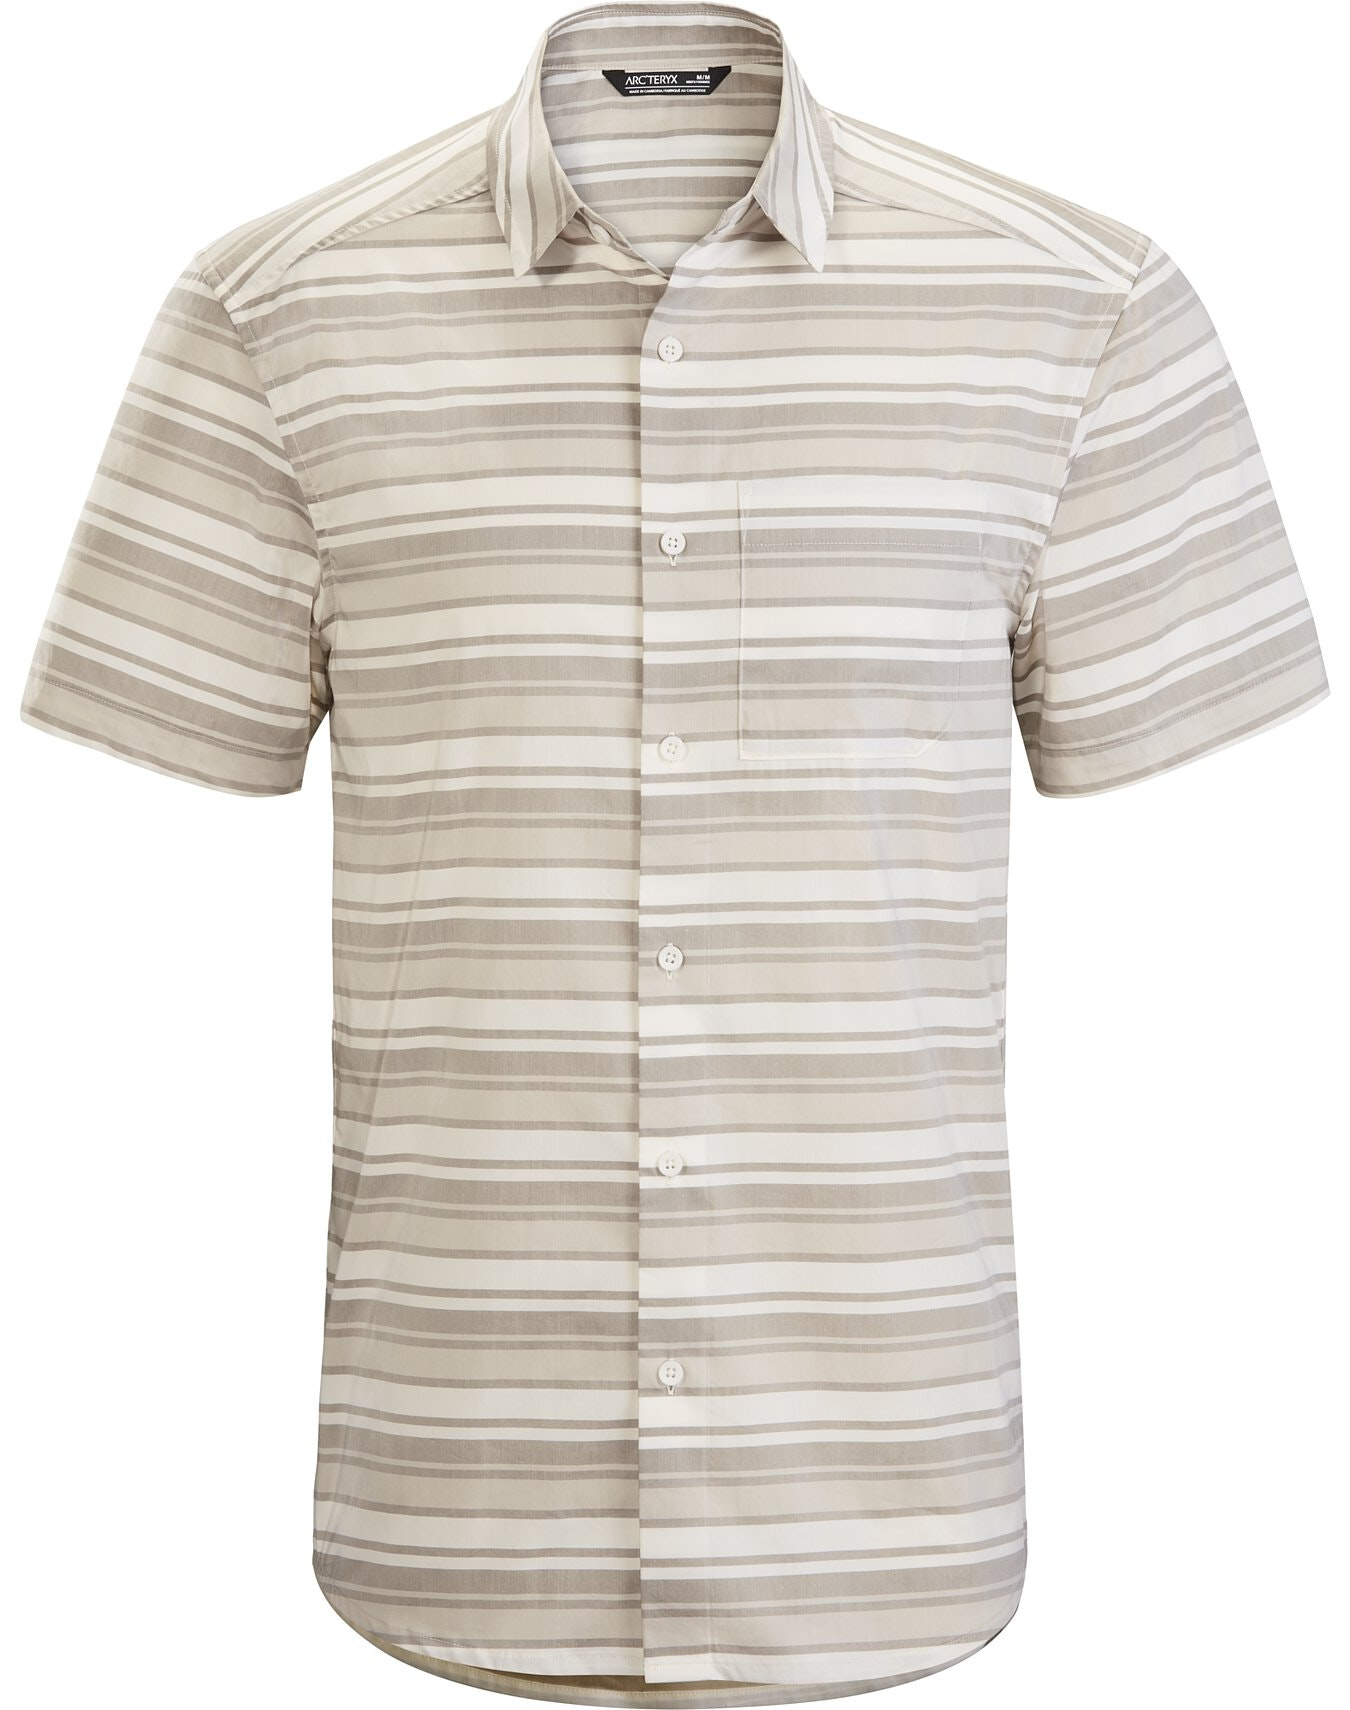 Brohm Striped Shirt SS Ethereal Rune